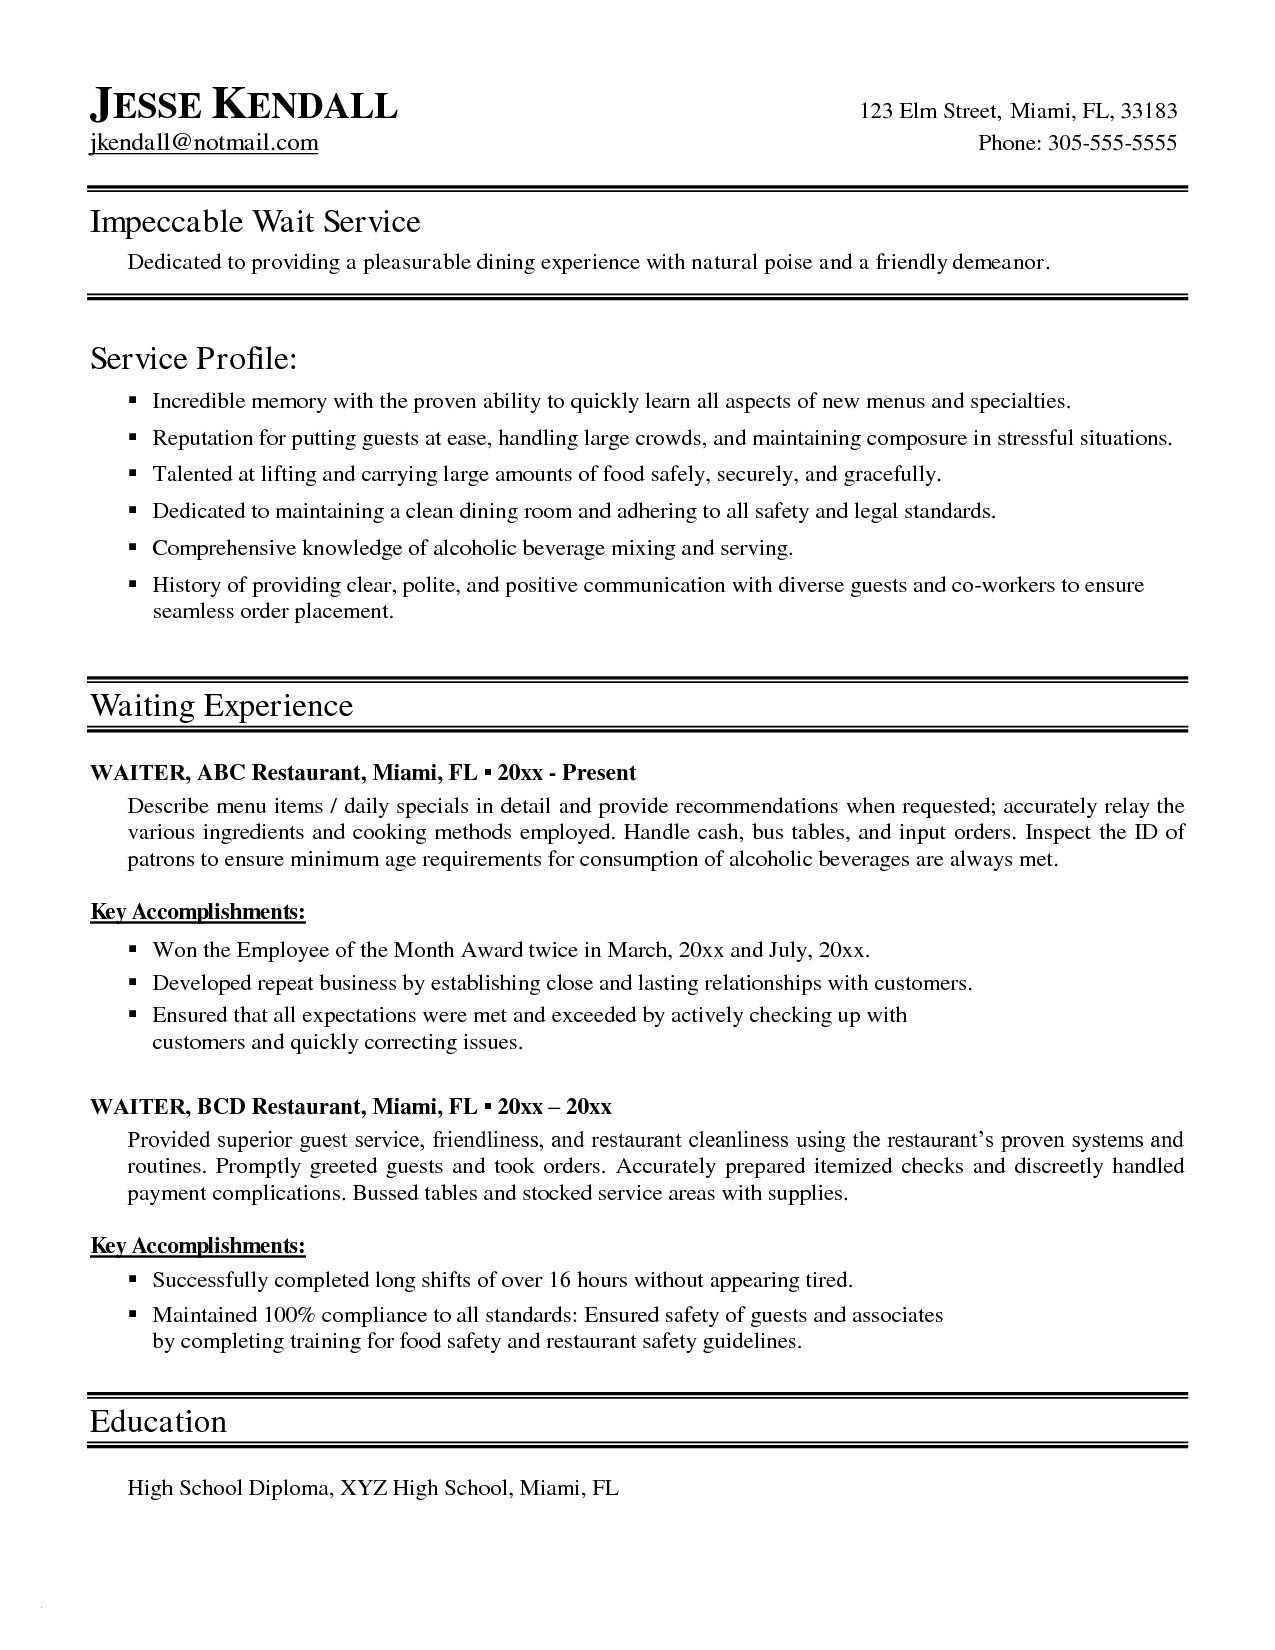 Babysitting Resume Examples - Babysitting Job Resume Fresh Beautiful Nanny Duties Resume Fresh